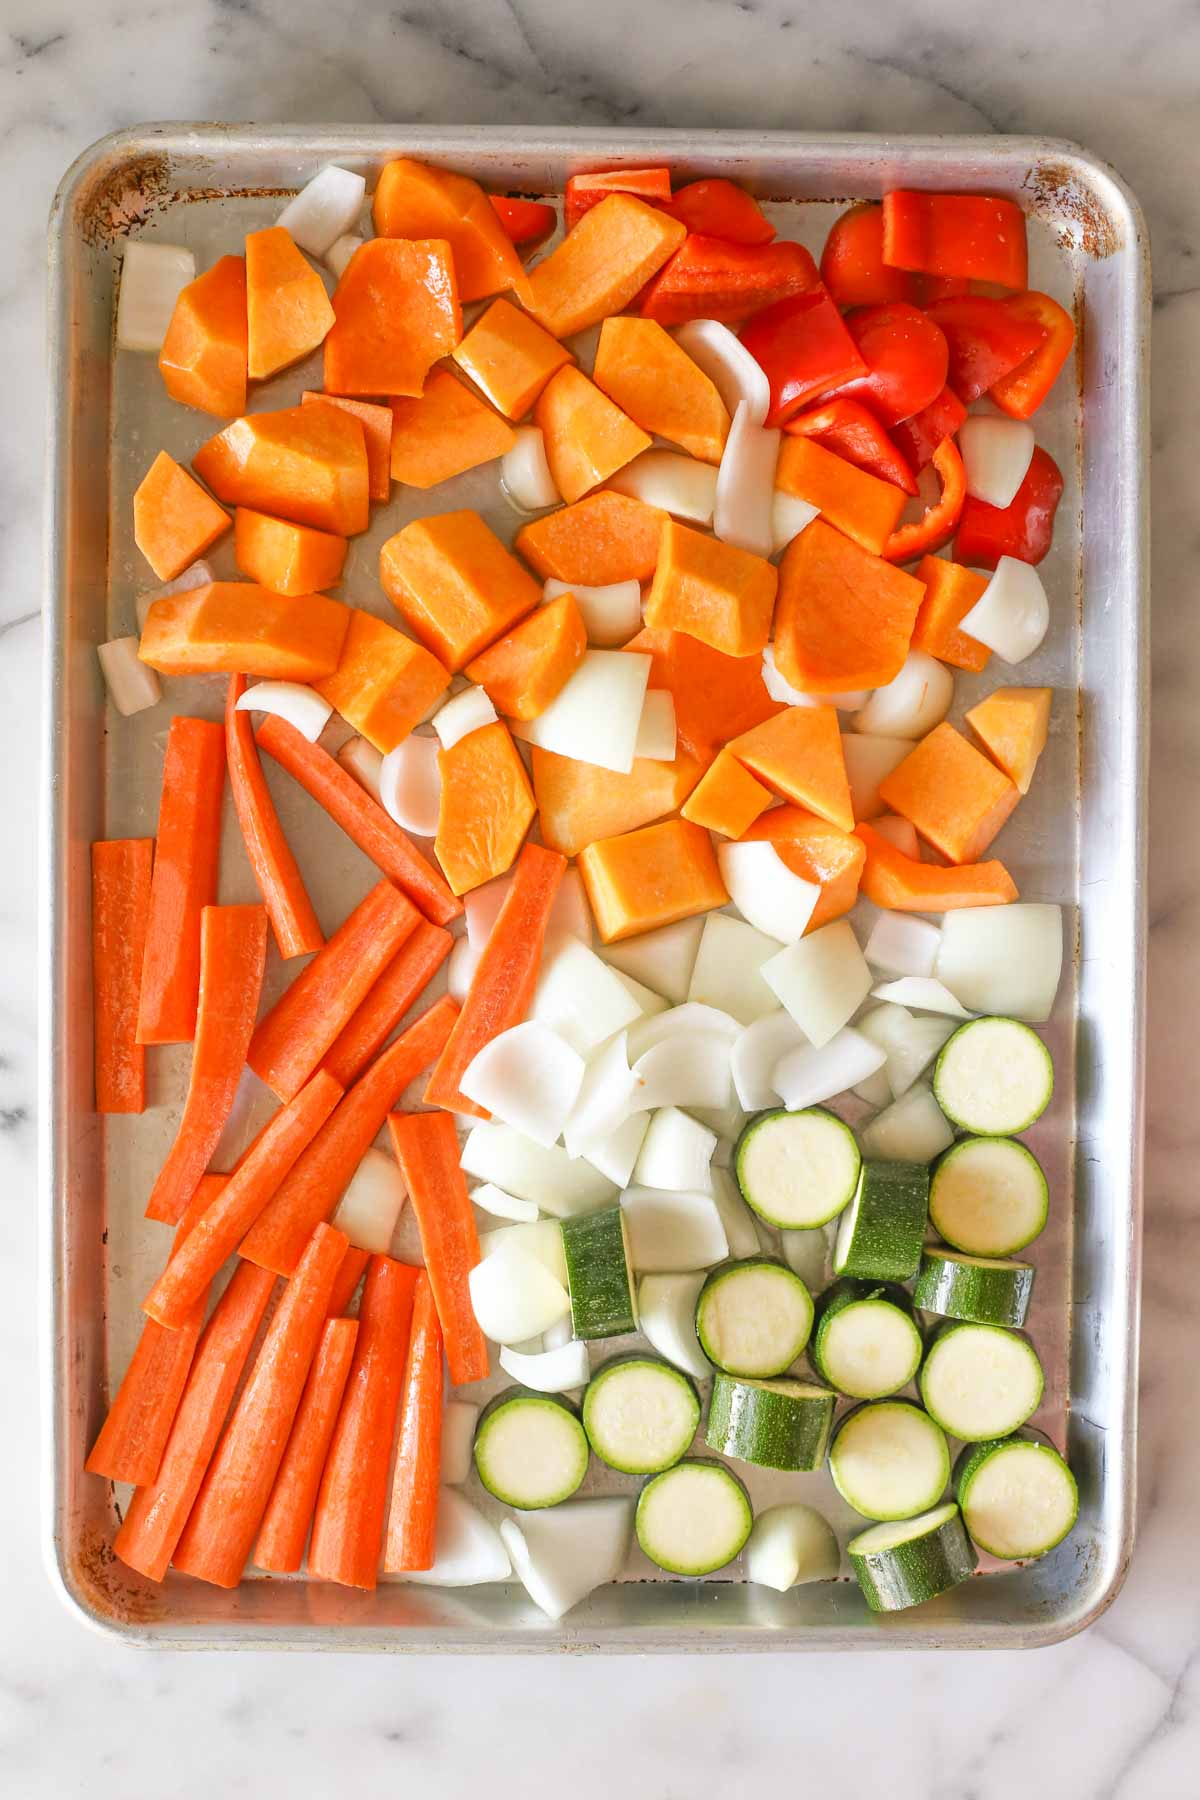 Overhead shot of the prepared squash, carrots, zucchini, pepper and onion on a baking sheet before being roasted for the Roasted Vegetable Soup.